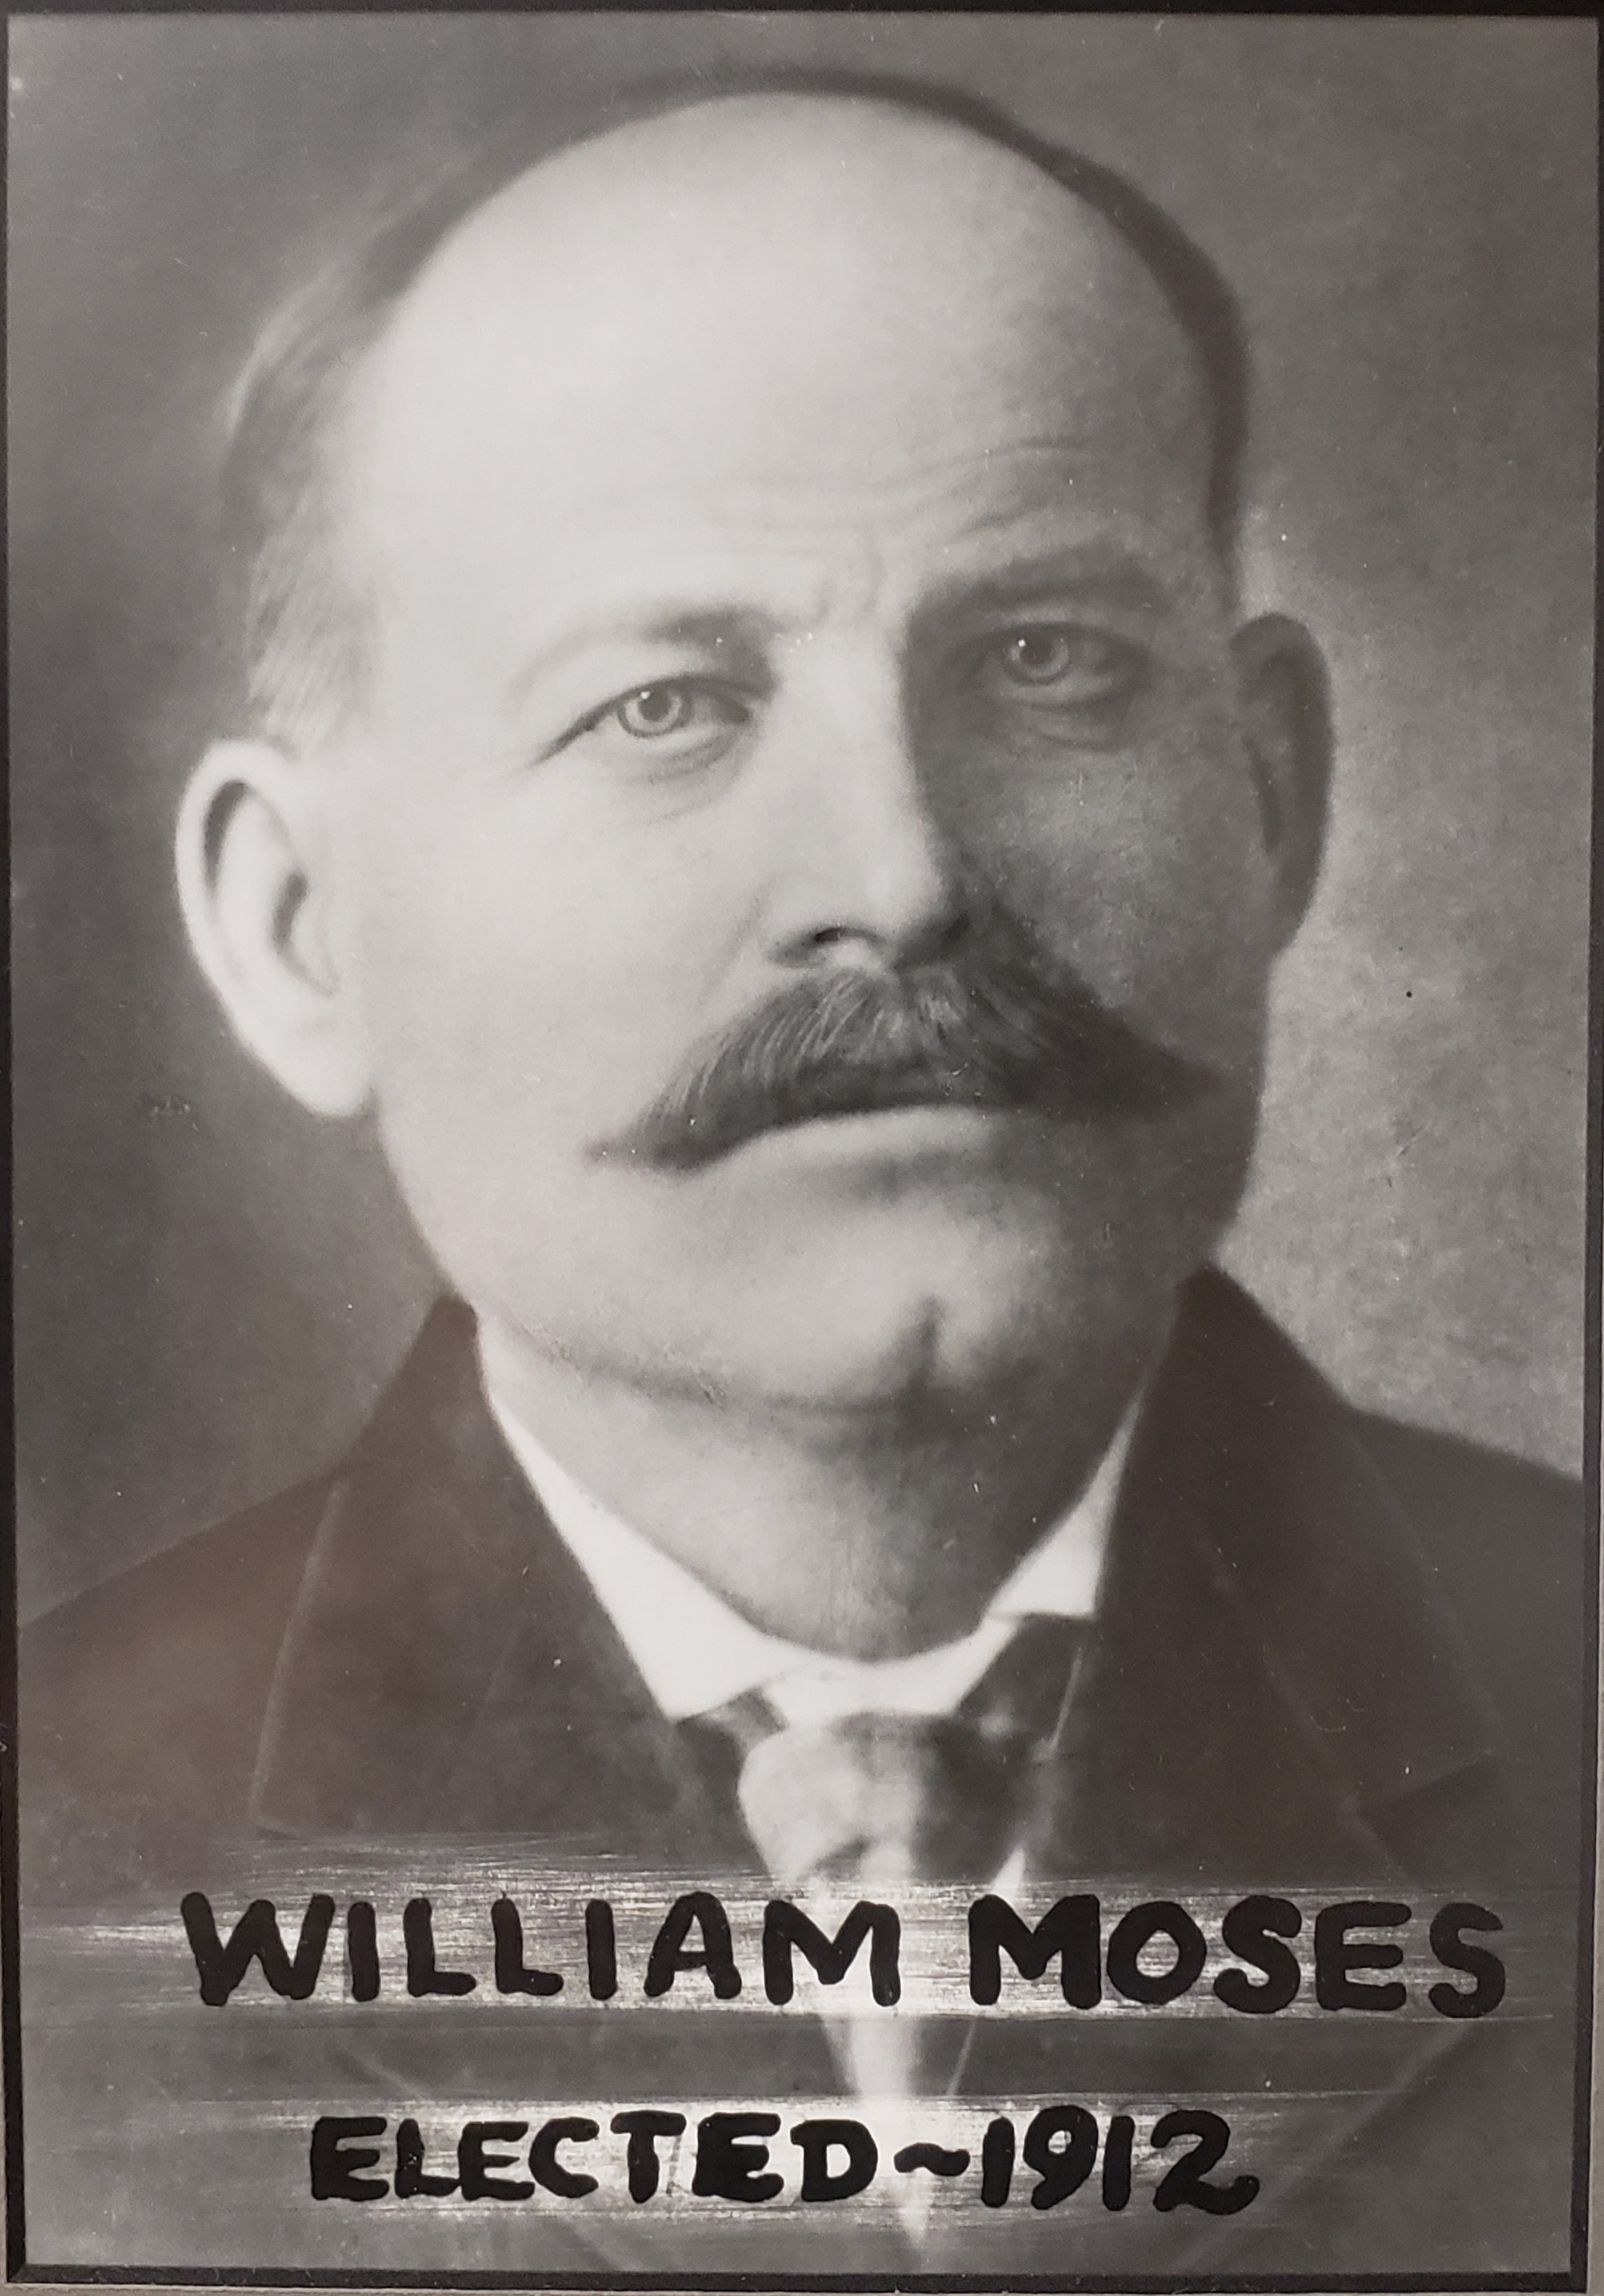 Sheriff William Moses | Rosebud County Sheriff's Office, Montana